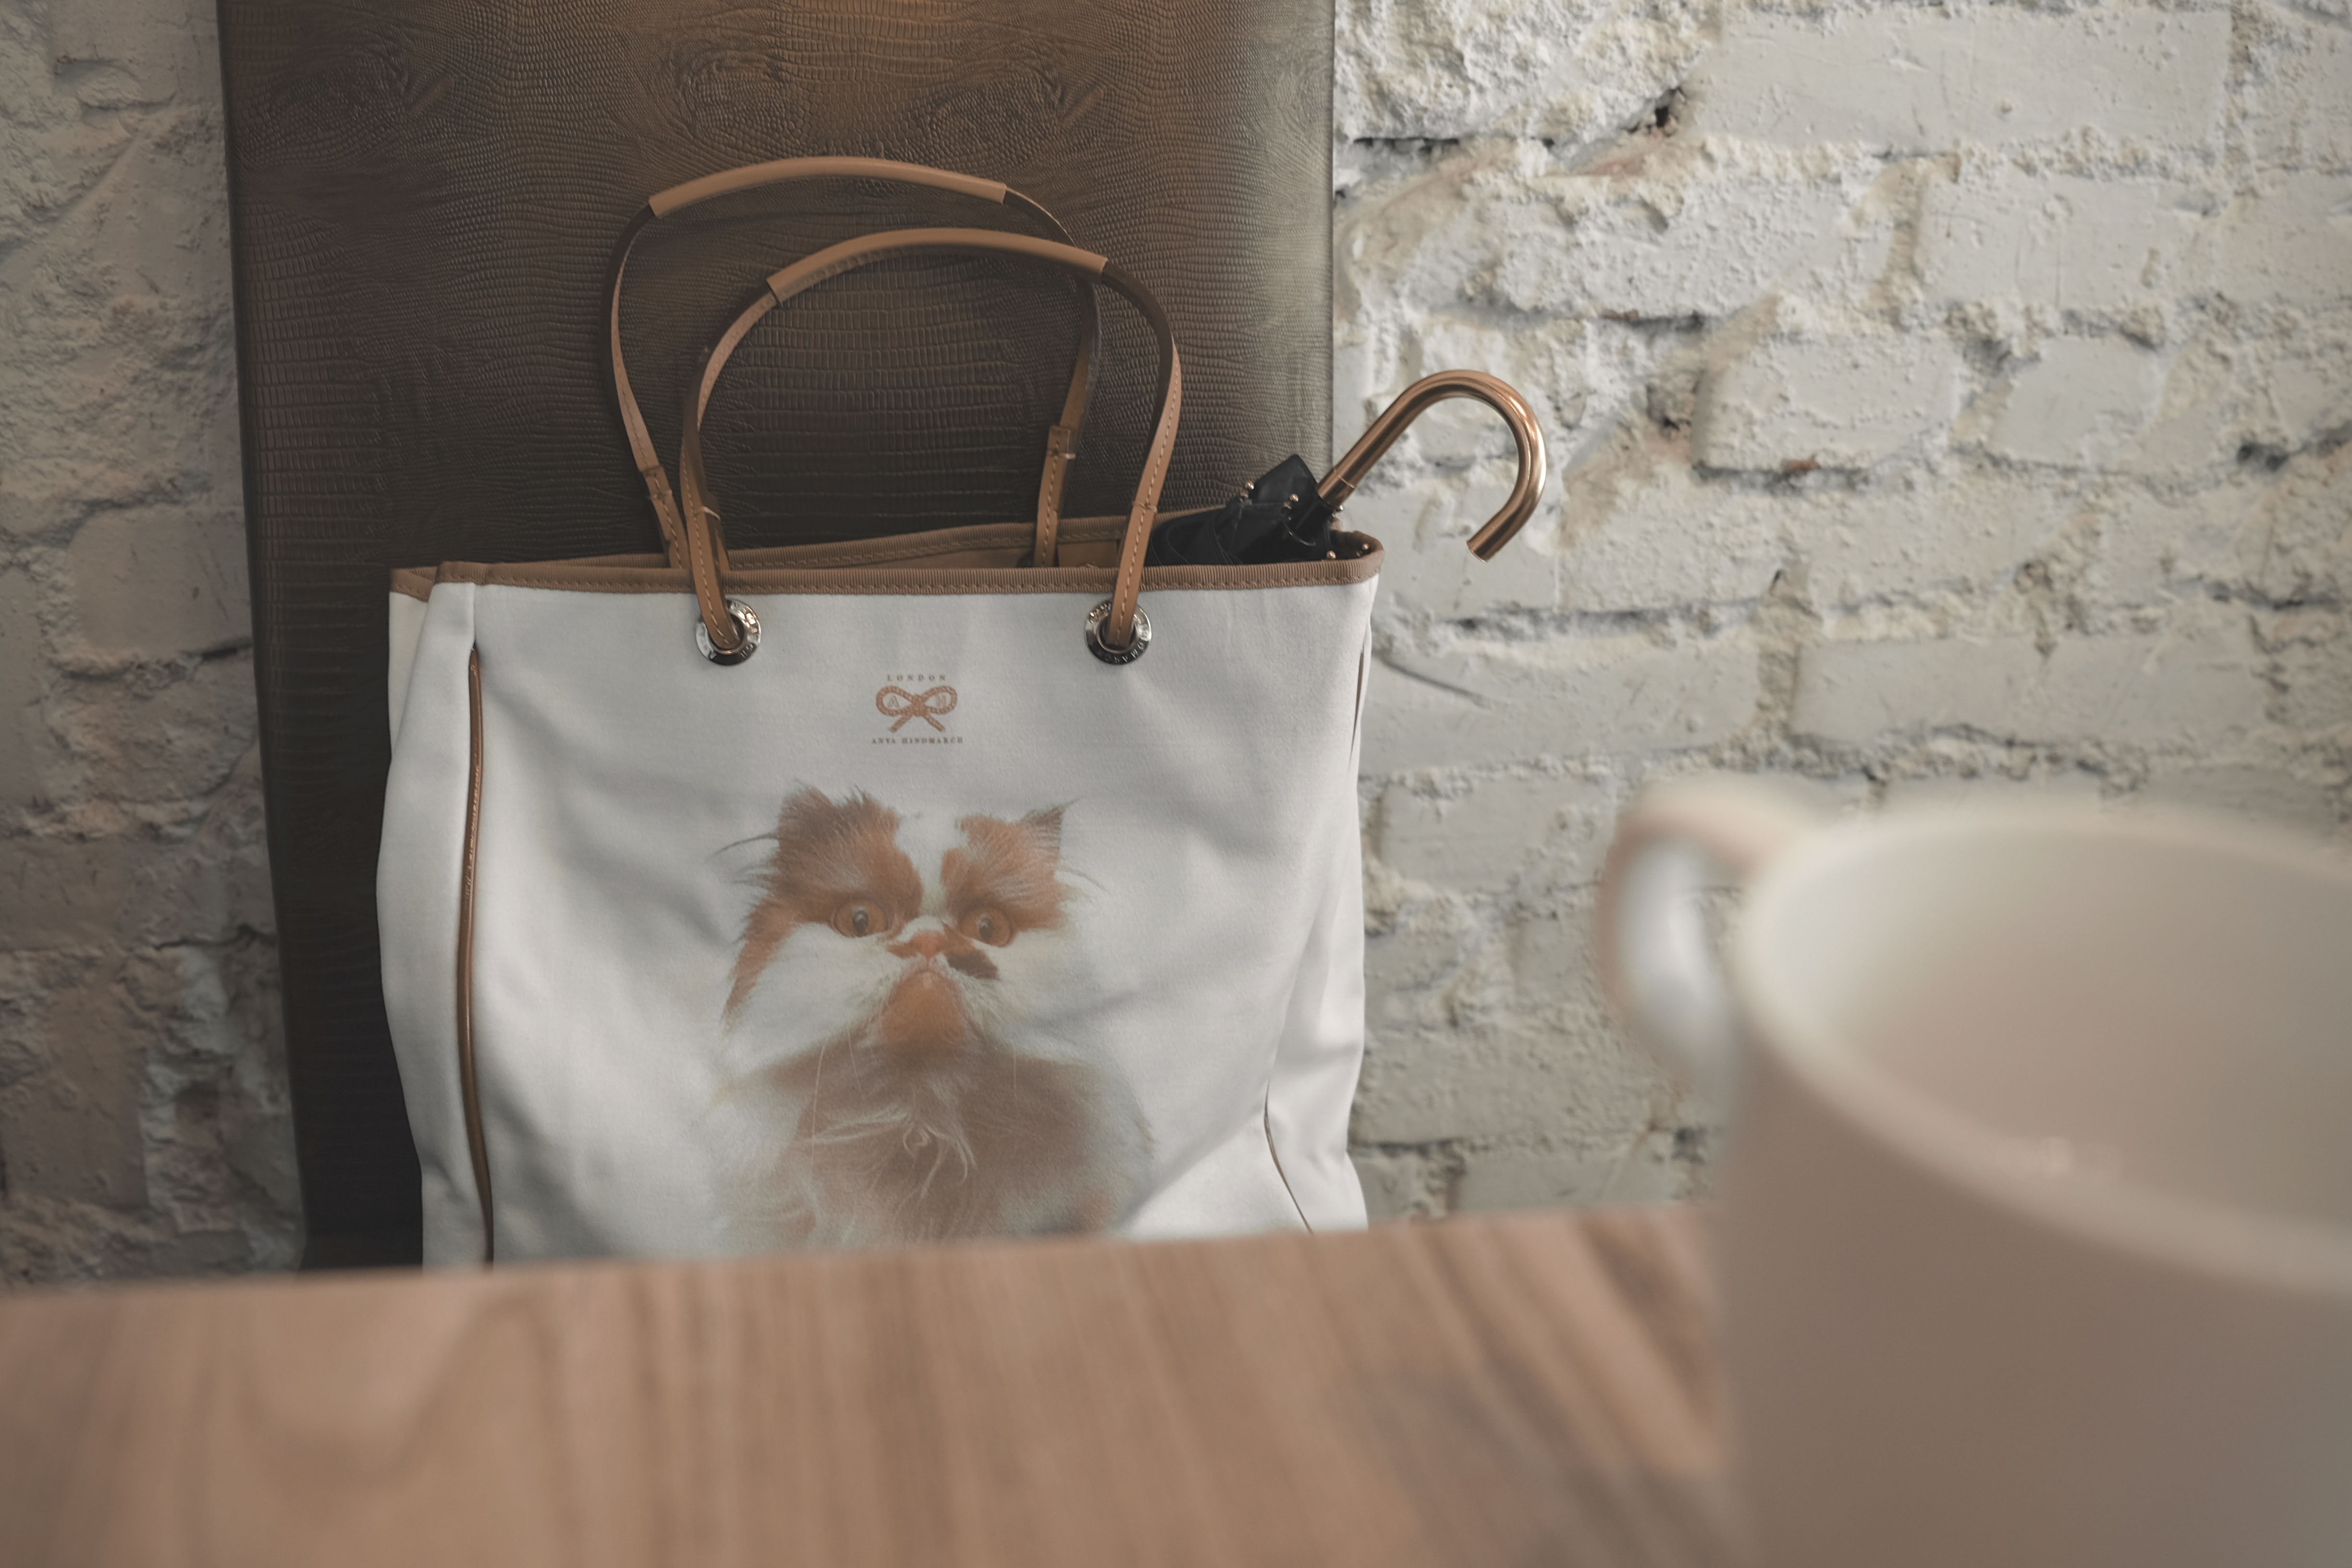 white and brown leather tote bag on chair